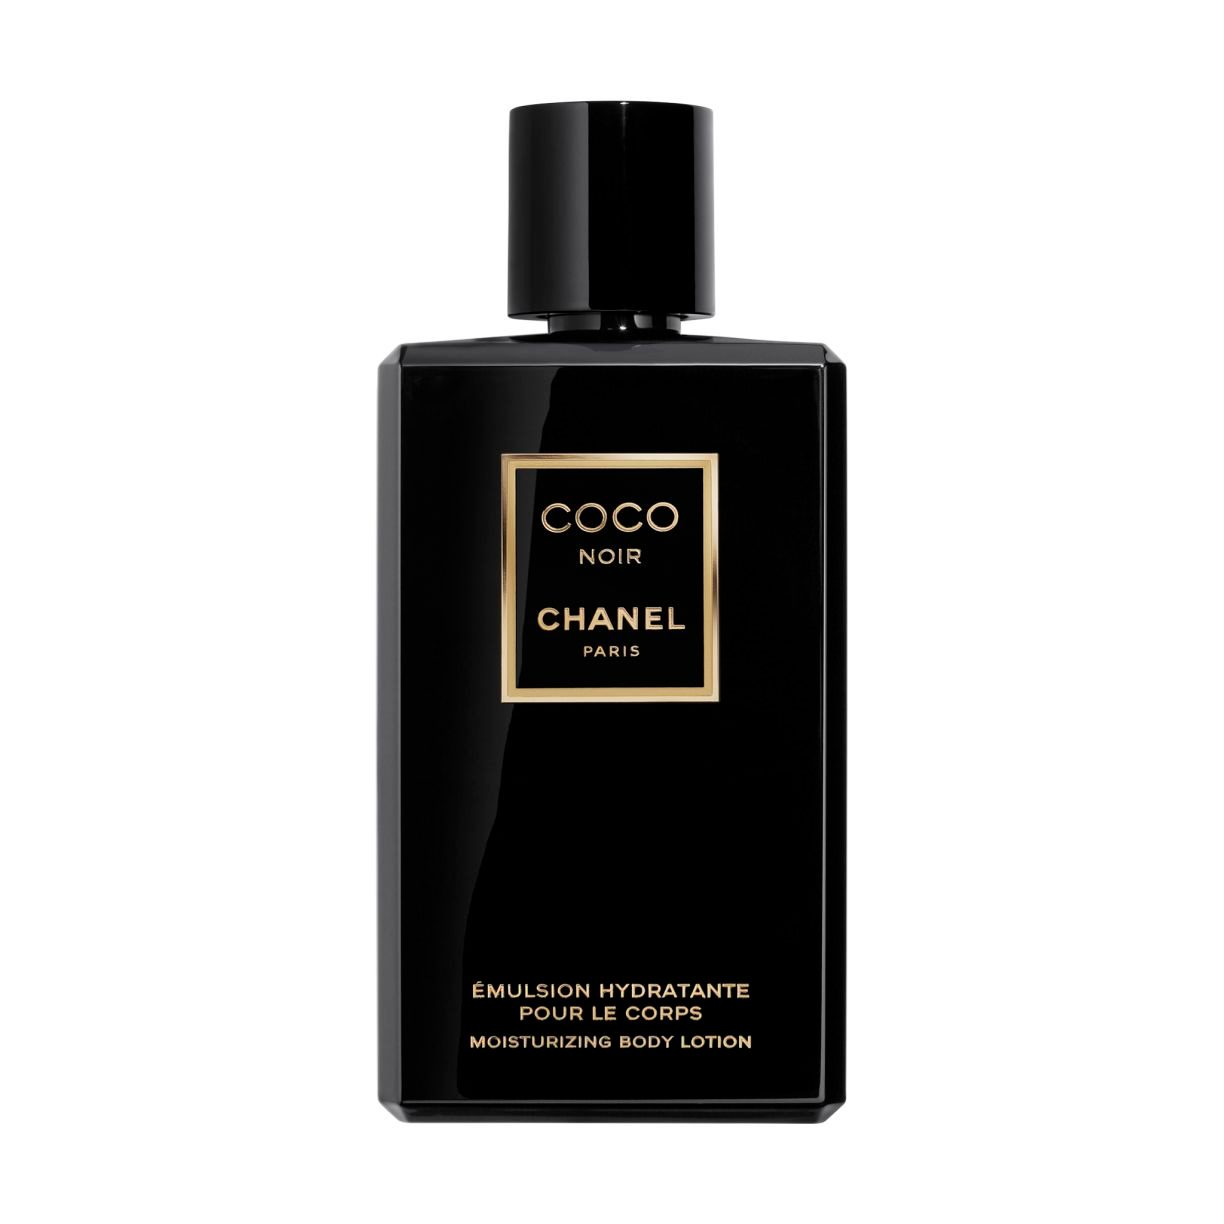 COCO NOIR MOISTURIZING BODY LOTION